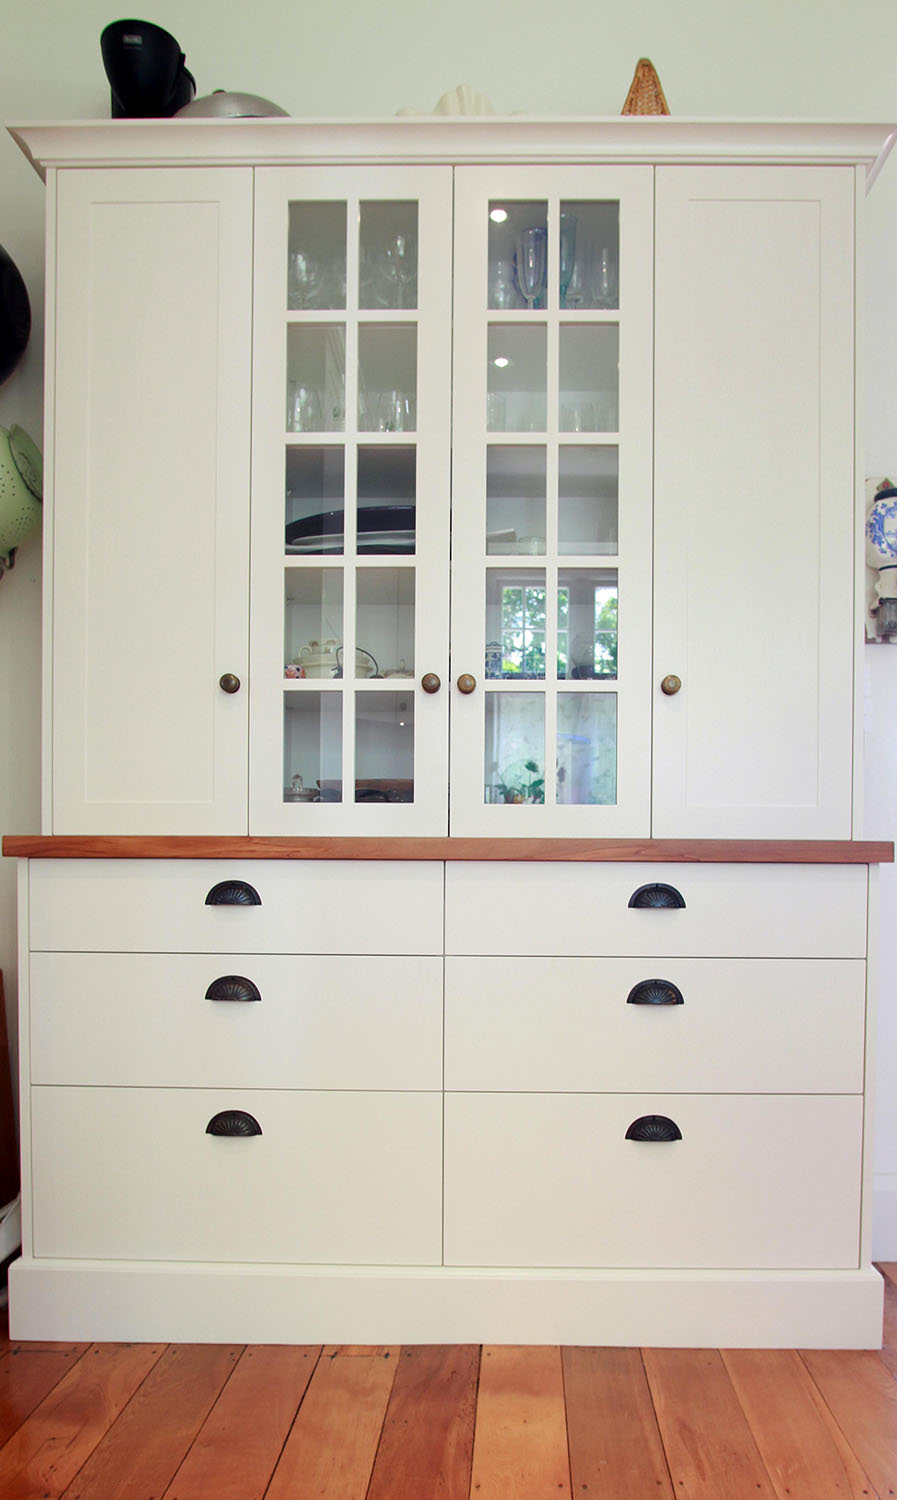 Dresser unit - lacquered fronts, rimu top